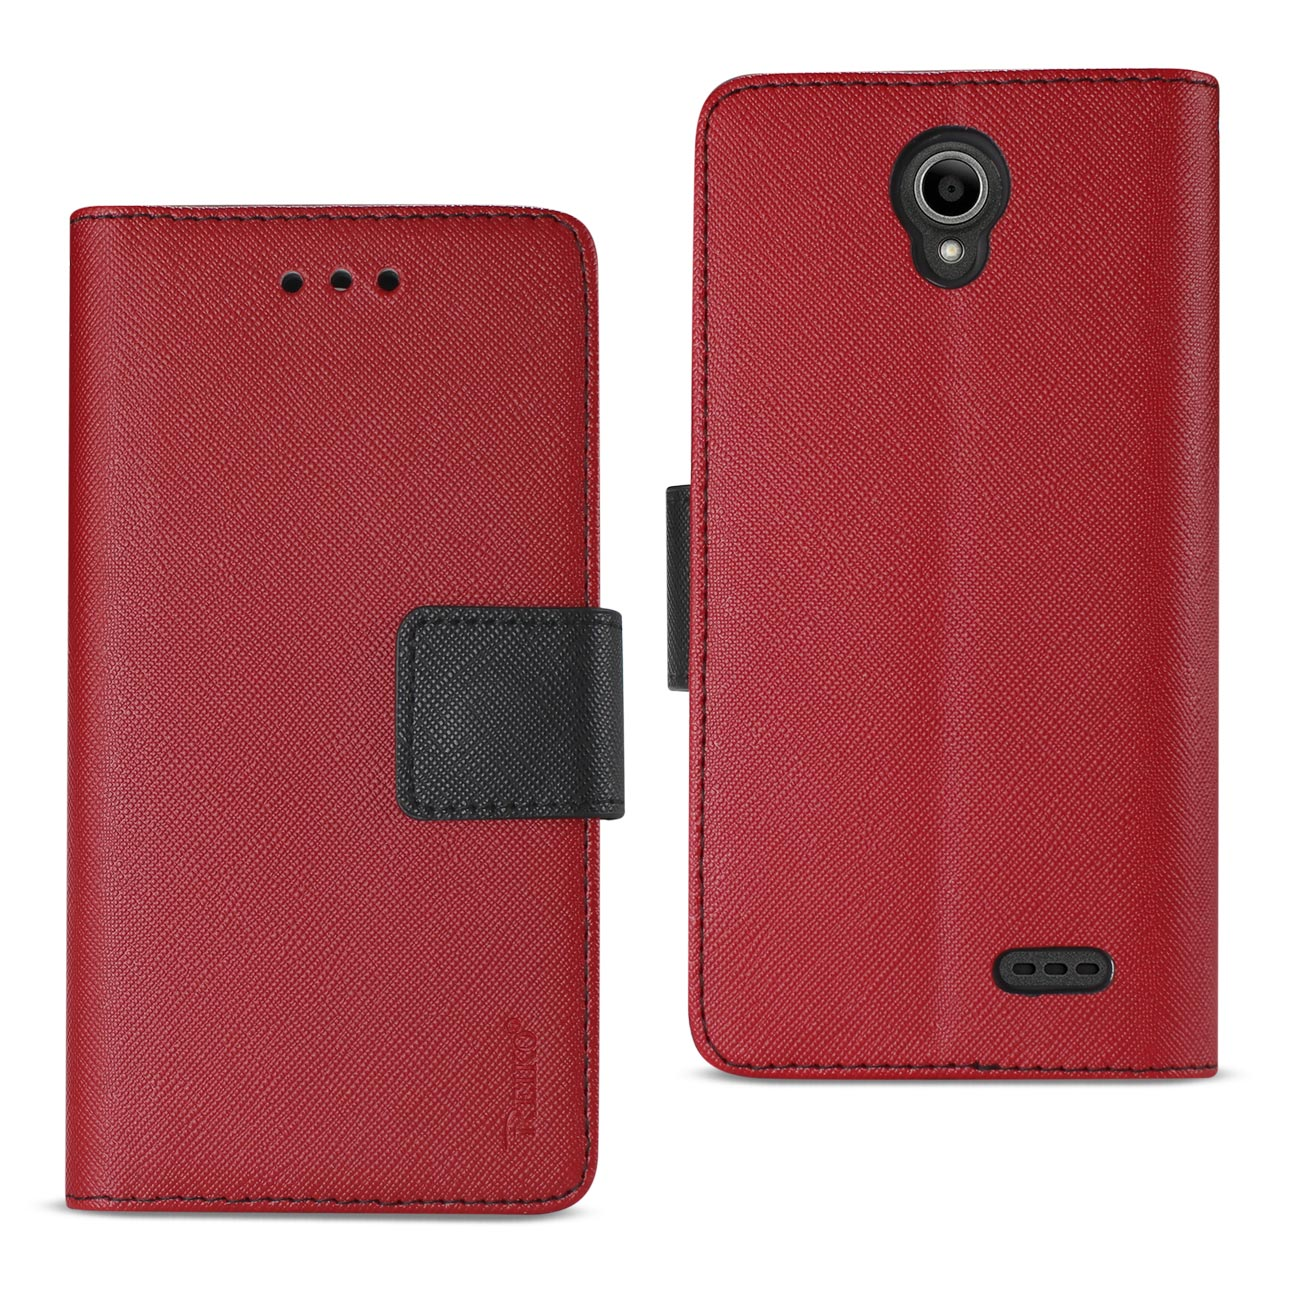 ZTE OVERTURE 3/ MAVEN 3/ PRESTIGE 2/ N9136 3-IN-1 WALLET CASE IN RED